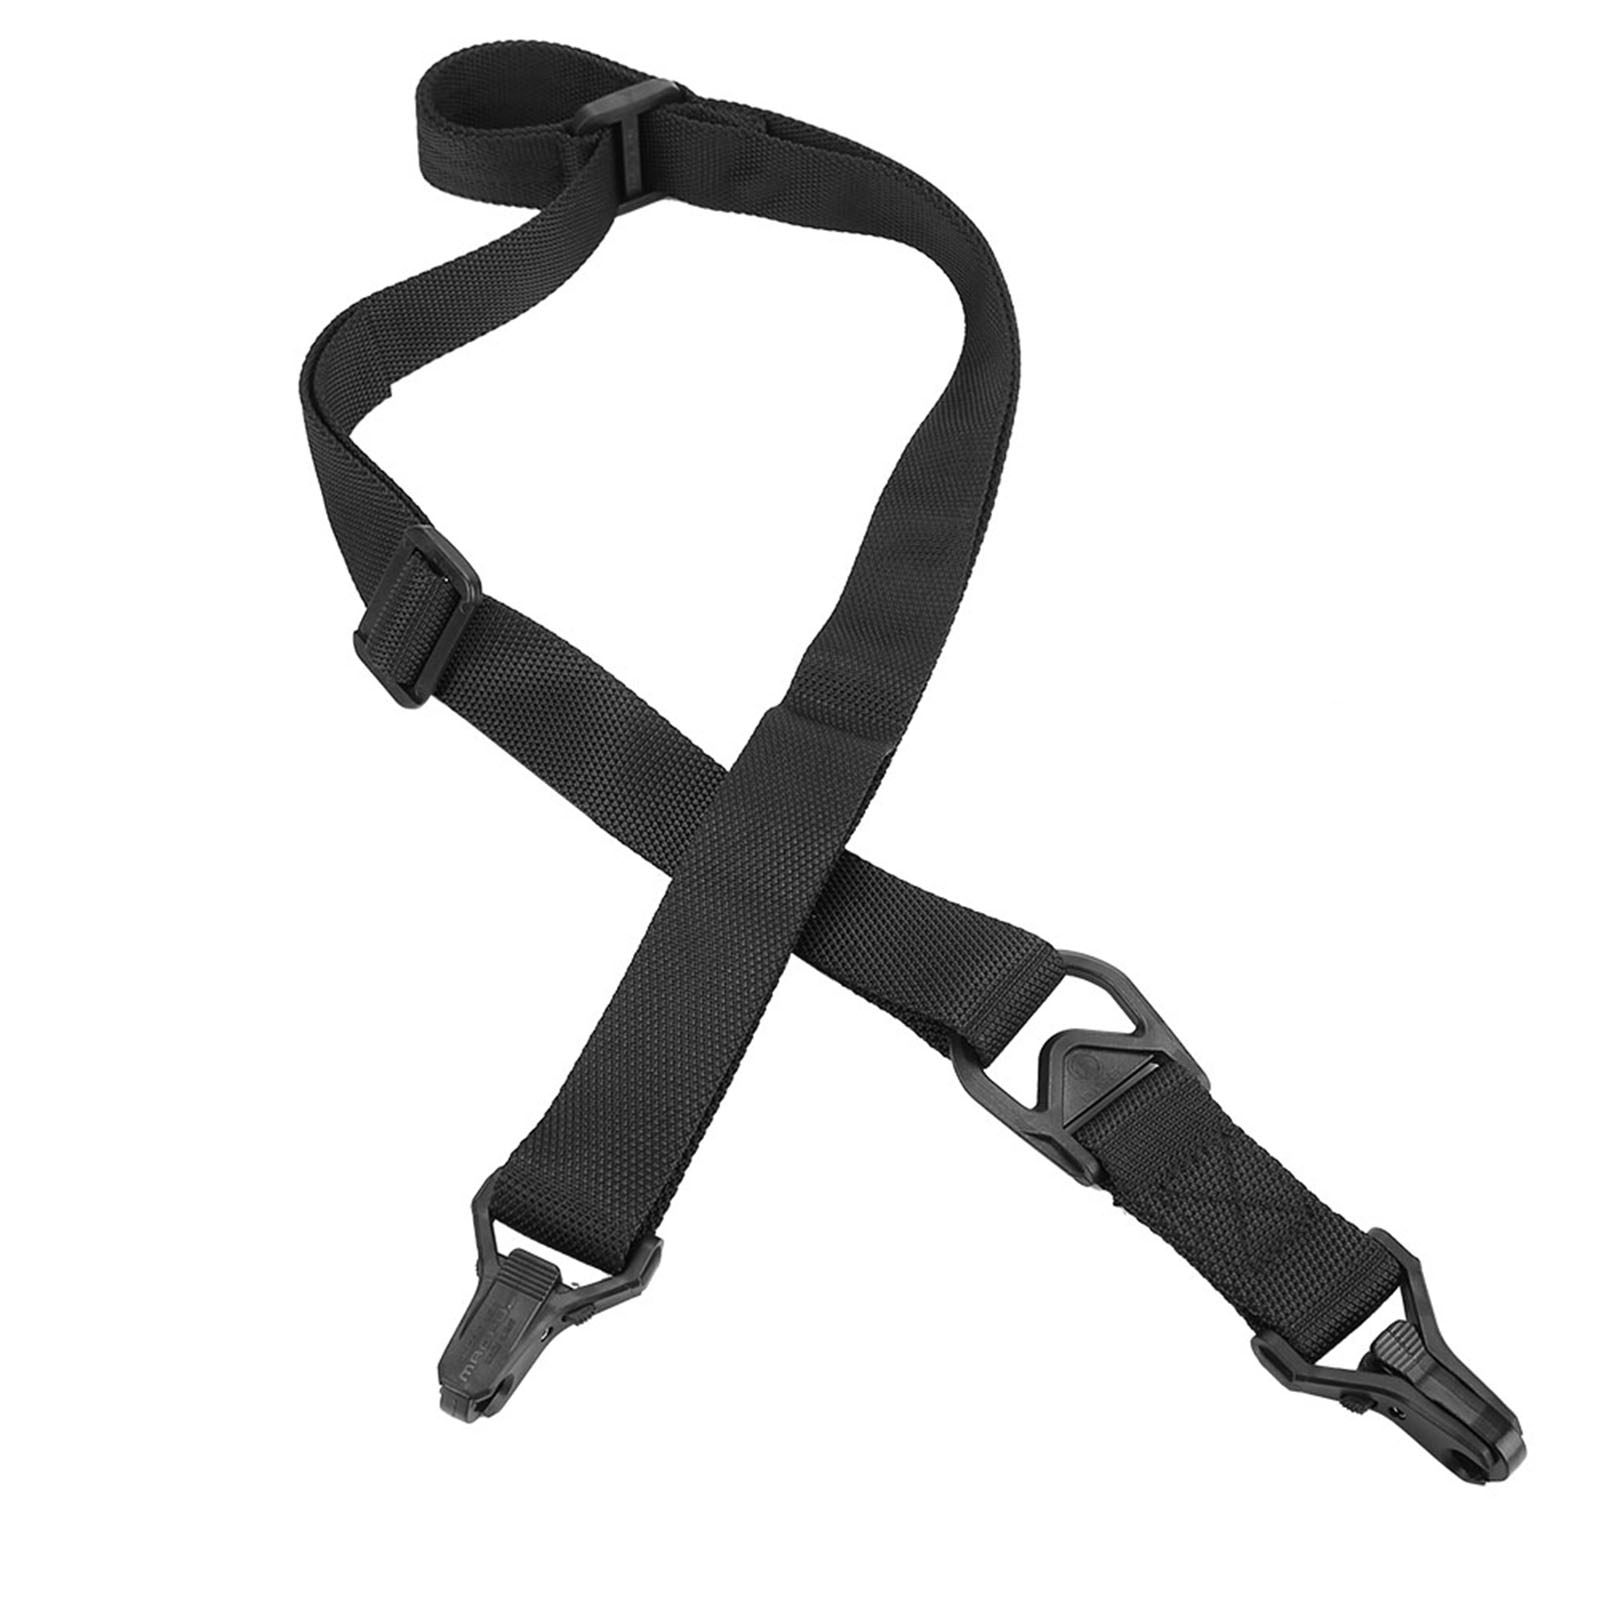 Tactical-1-2-Point-Rifle-Sling-System-Strap-Hunting-Bungee-Quick-Release-Detach thumbnail 17